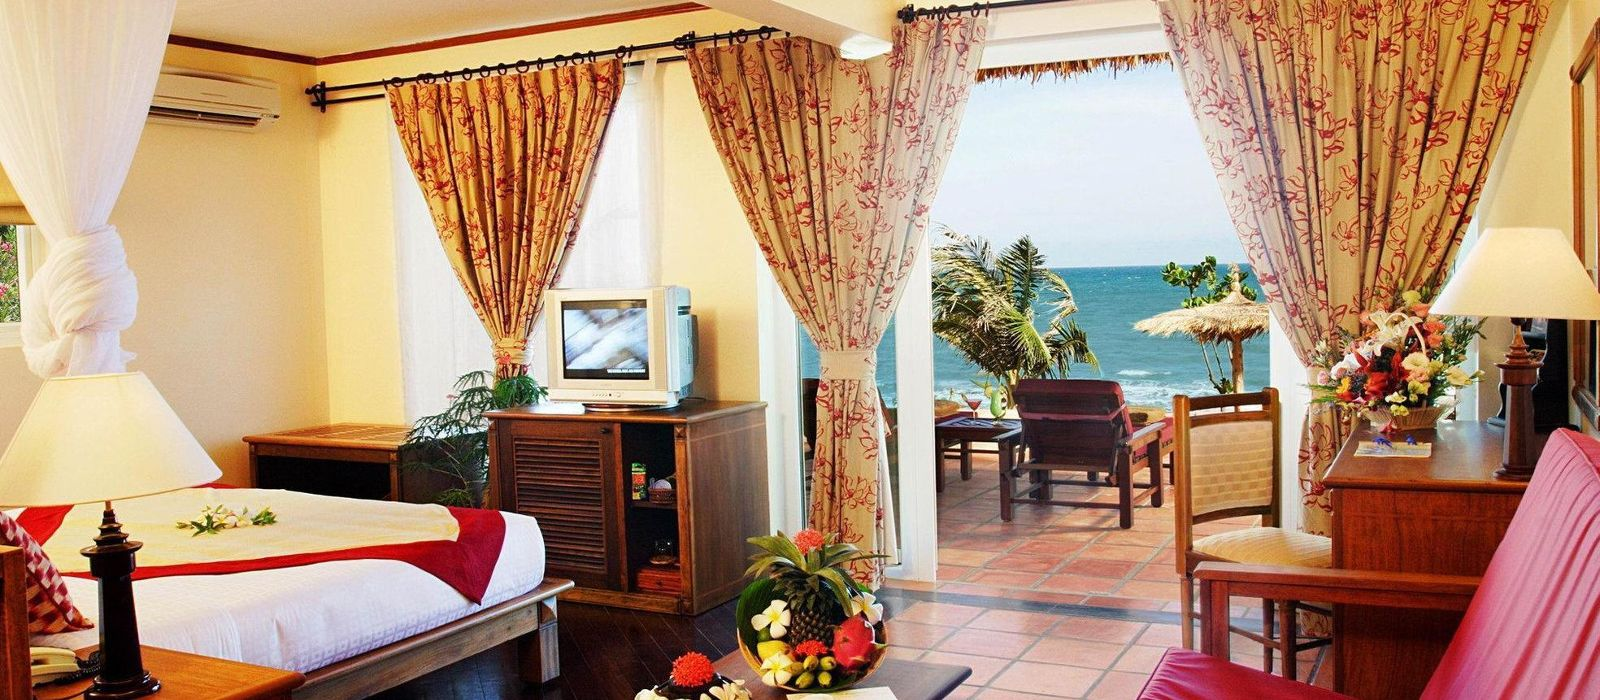 Hotel Victoria Phan Thiet Beach Resort & Spa Vietnam